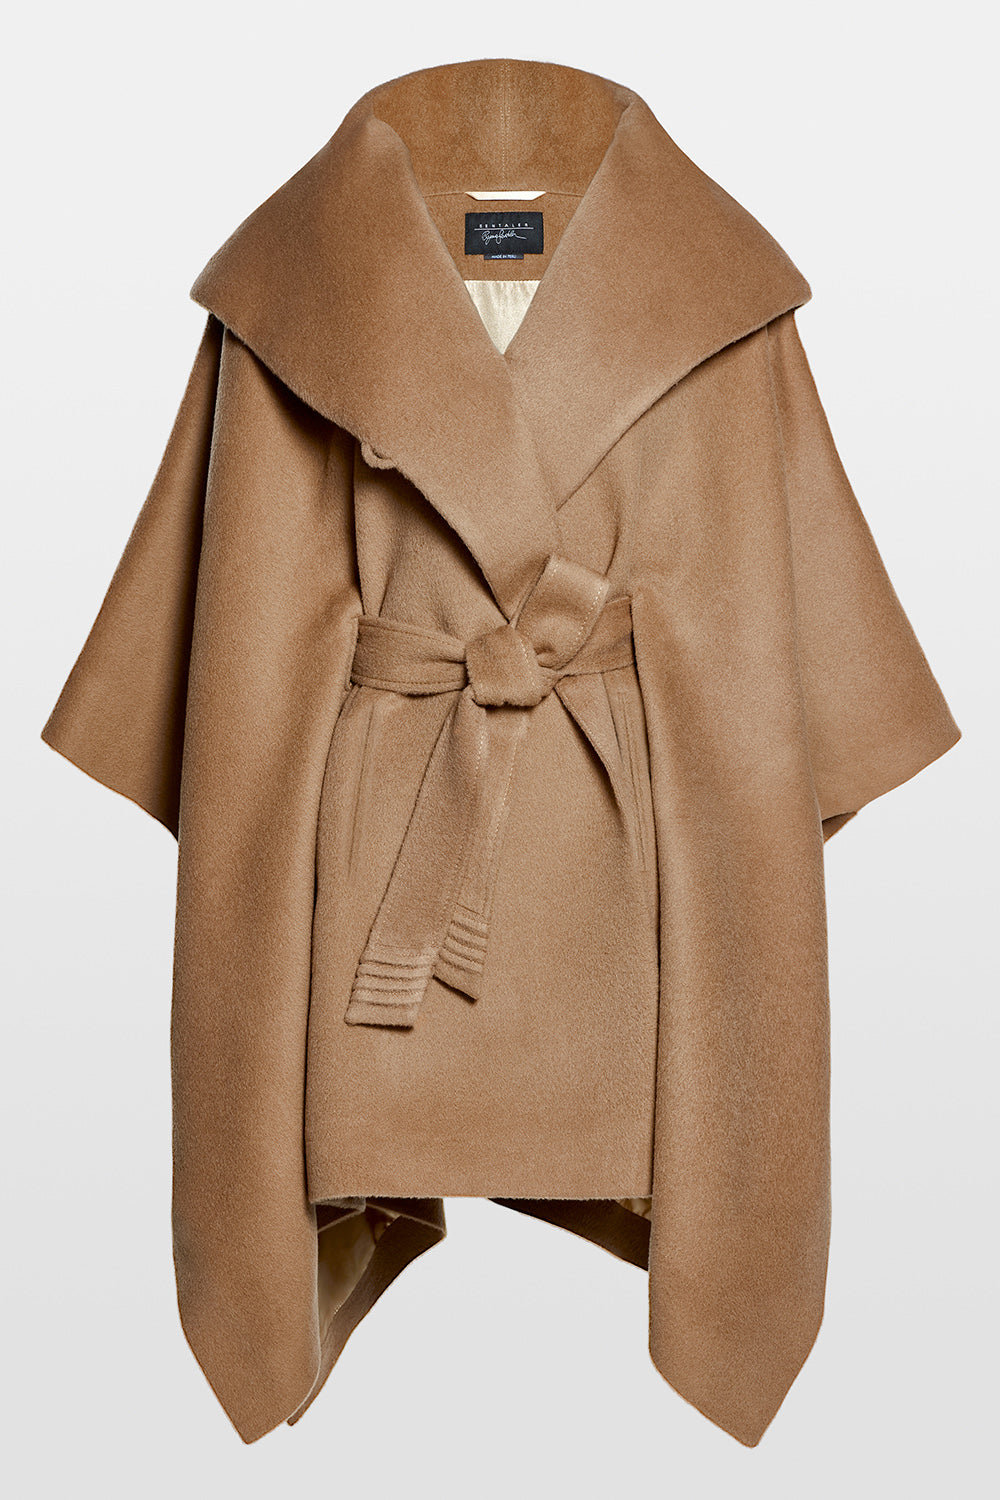 Sentaler Oversized Hooded Poncho with Belt featured in Baby Alpaca and available in Dark Camel. Seen off model.